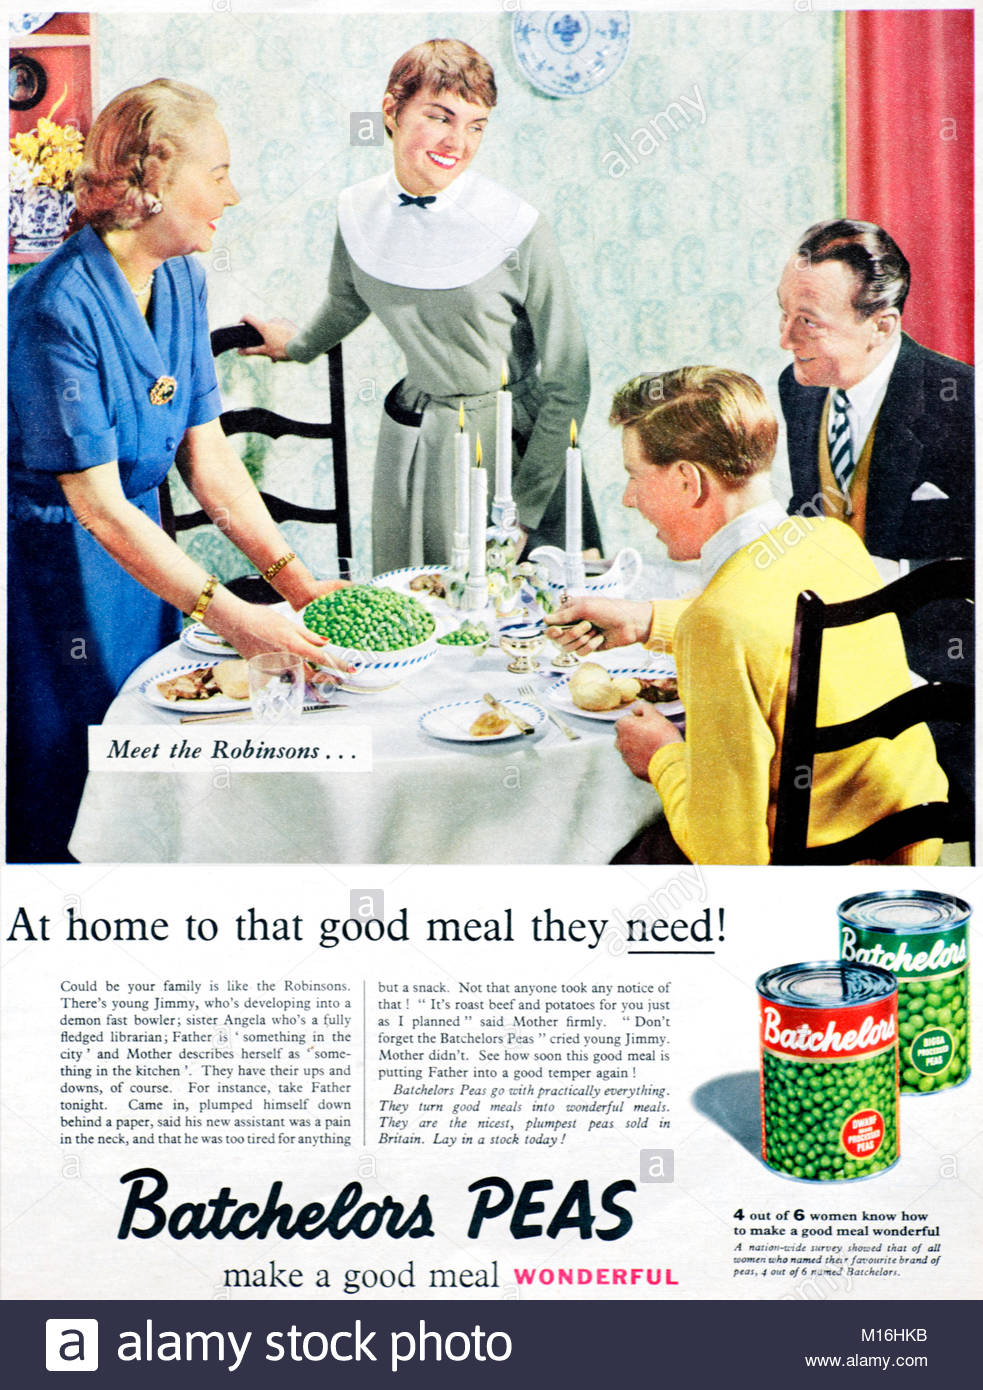 Batchelors peas vintage advertising 1955 - Stock Image